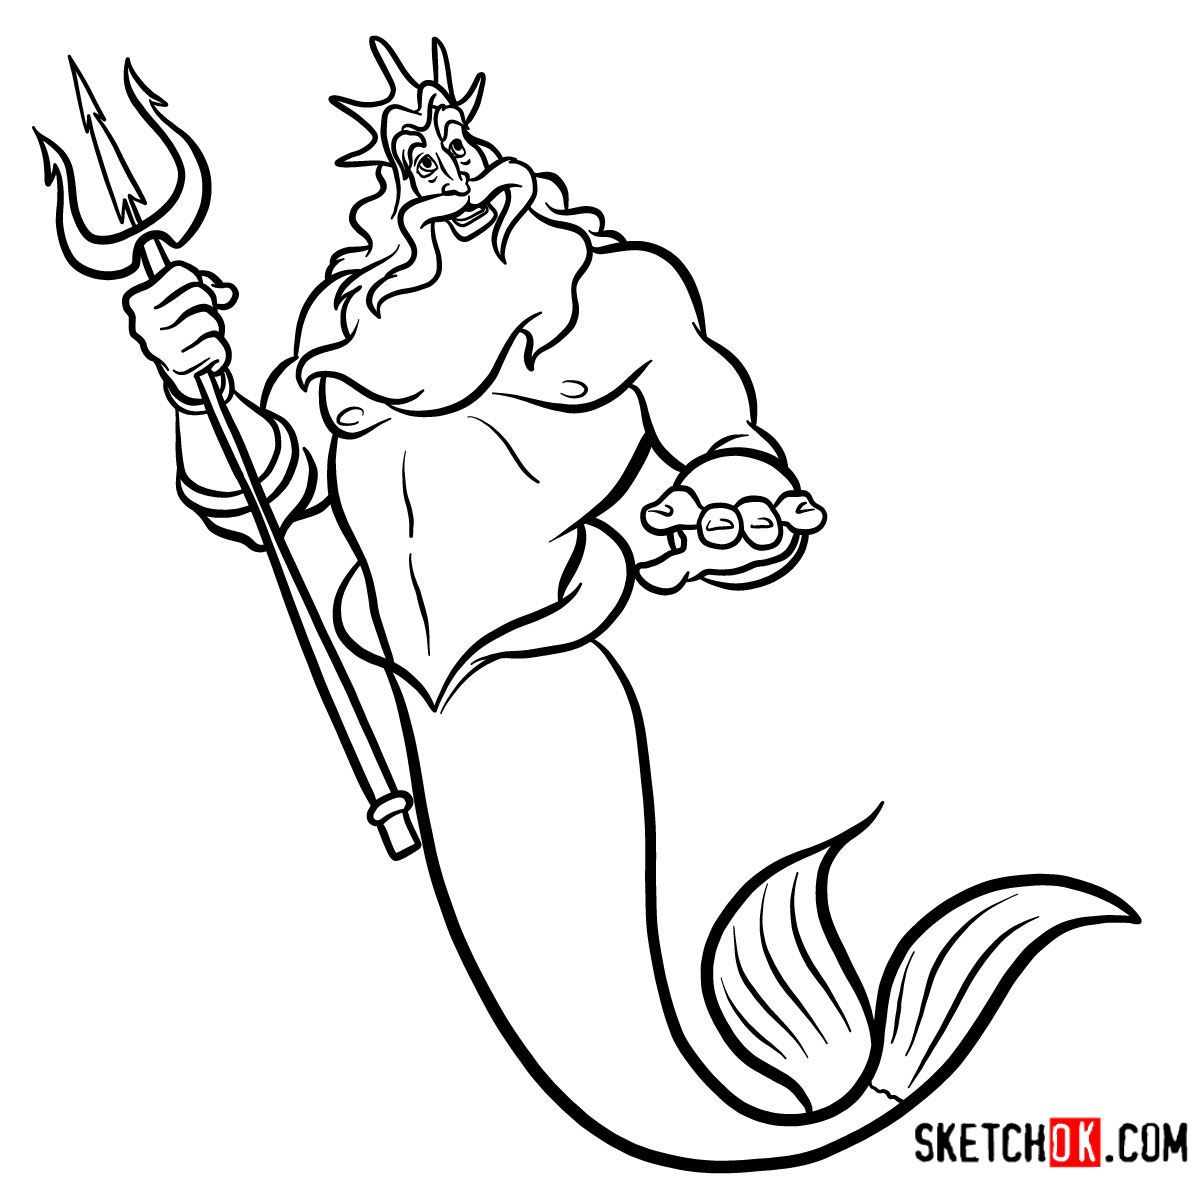 How to draw King Triton  The Little Mermaid - Step by step